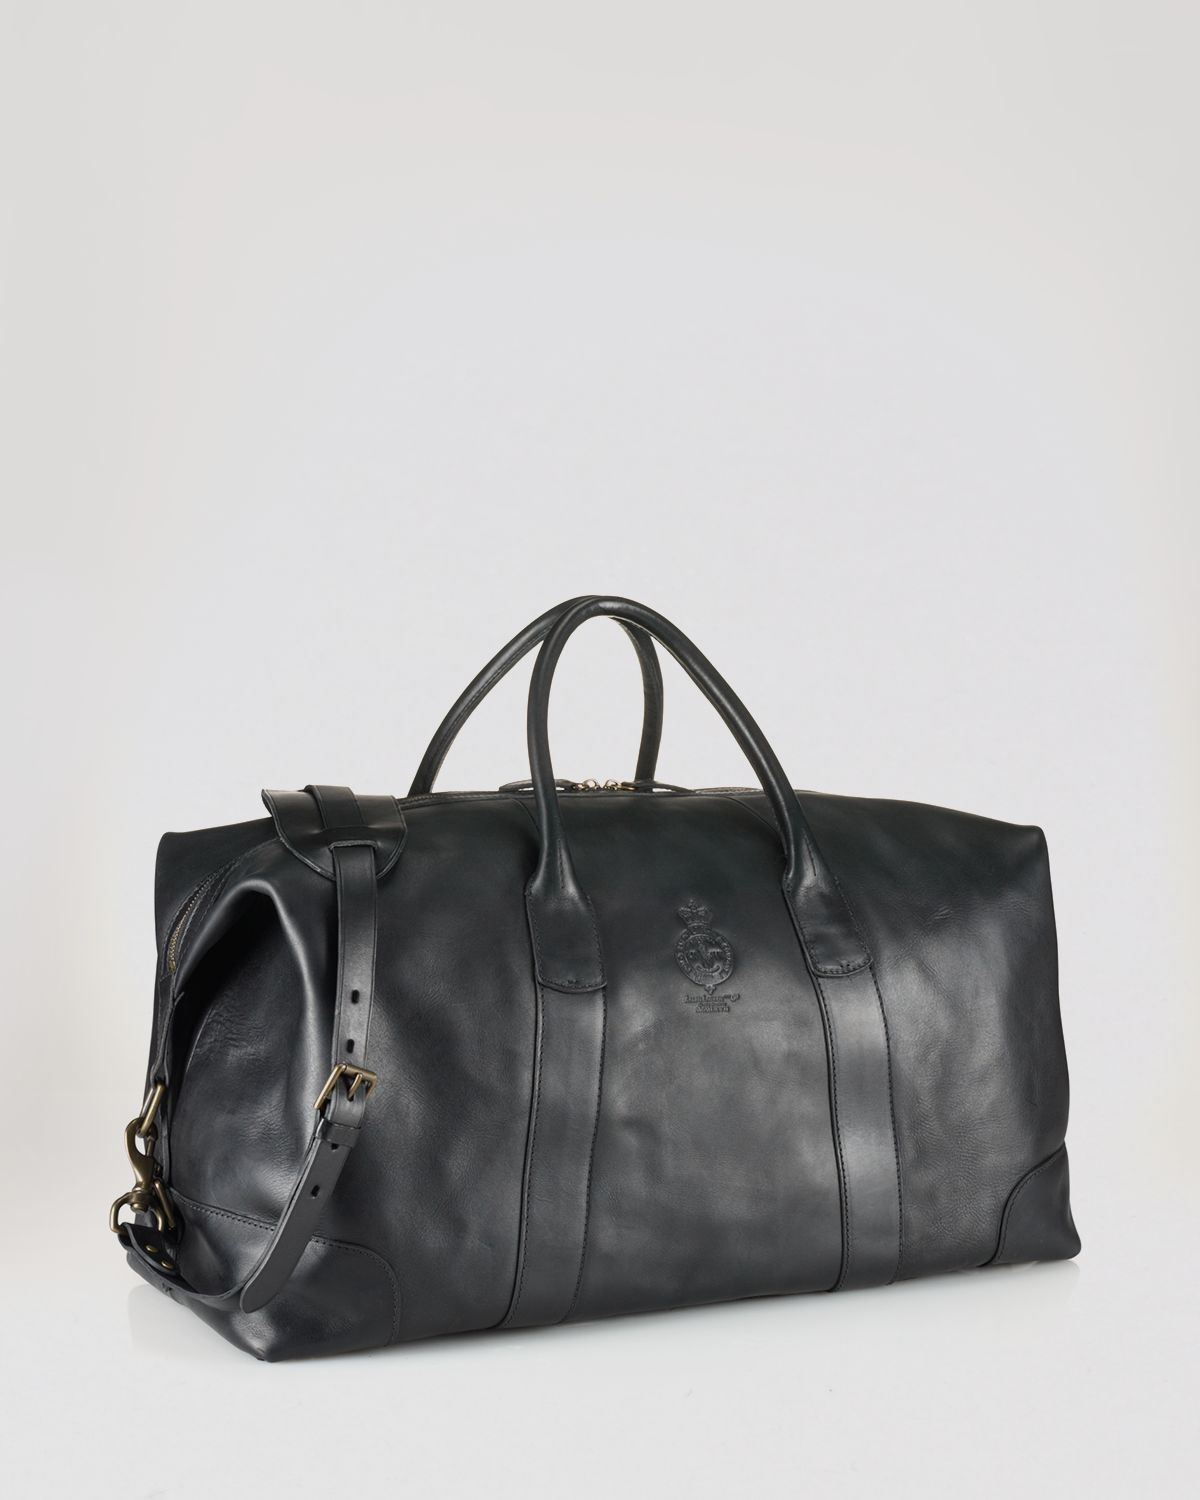 dfa3dcbe4b5a Lyst - Ralph Lauren Polo Leather Duffel Bag in Black for Men